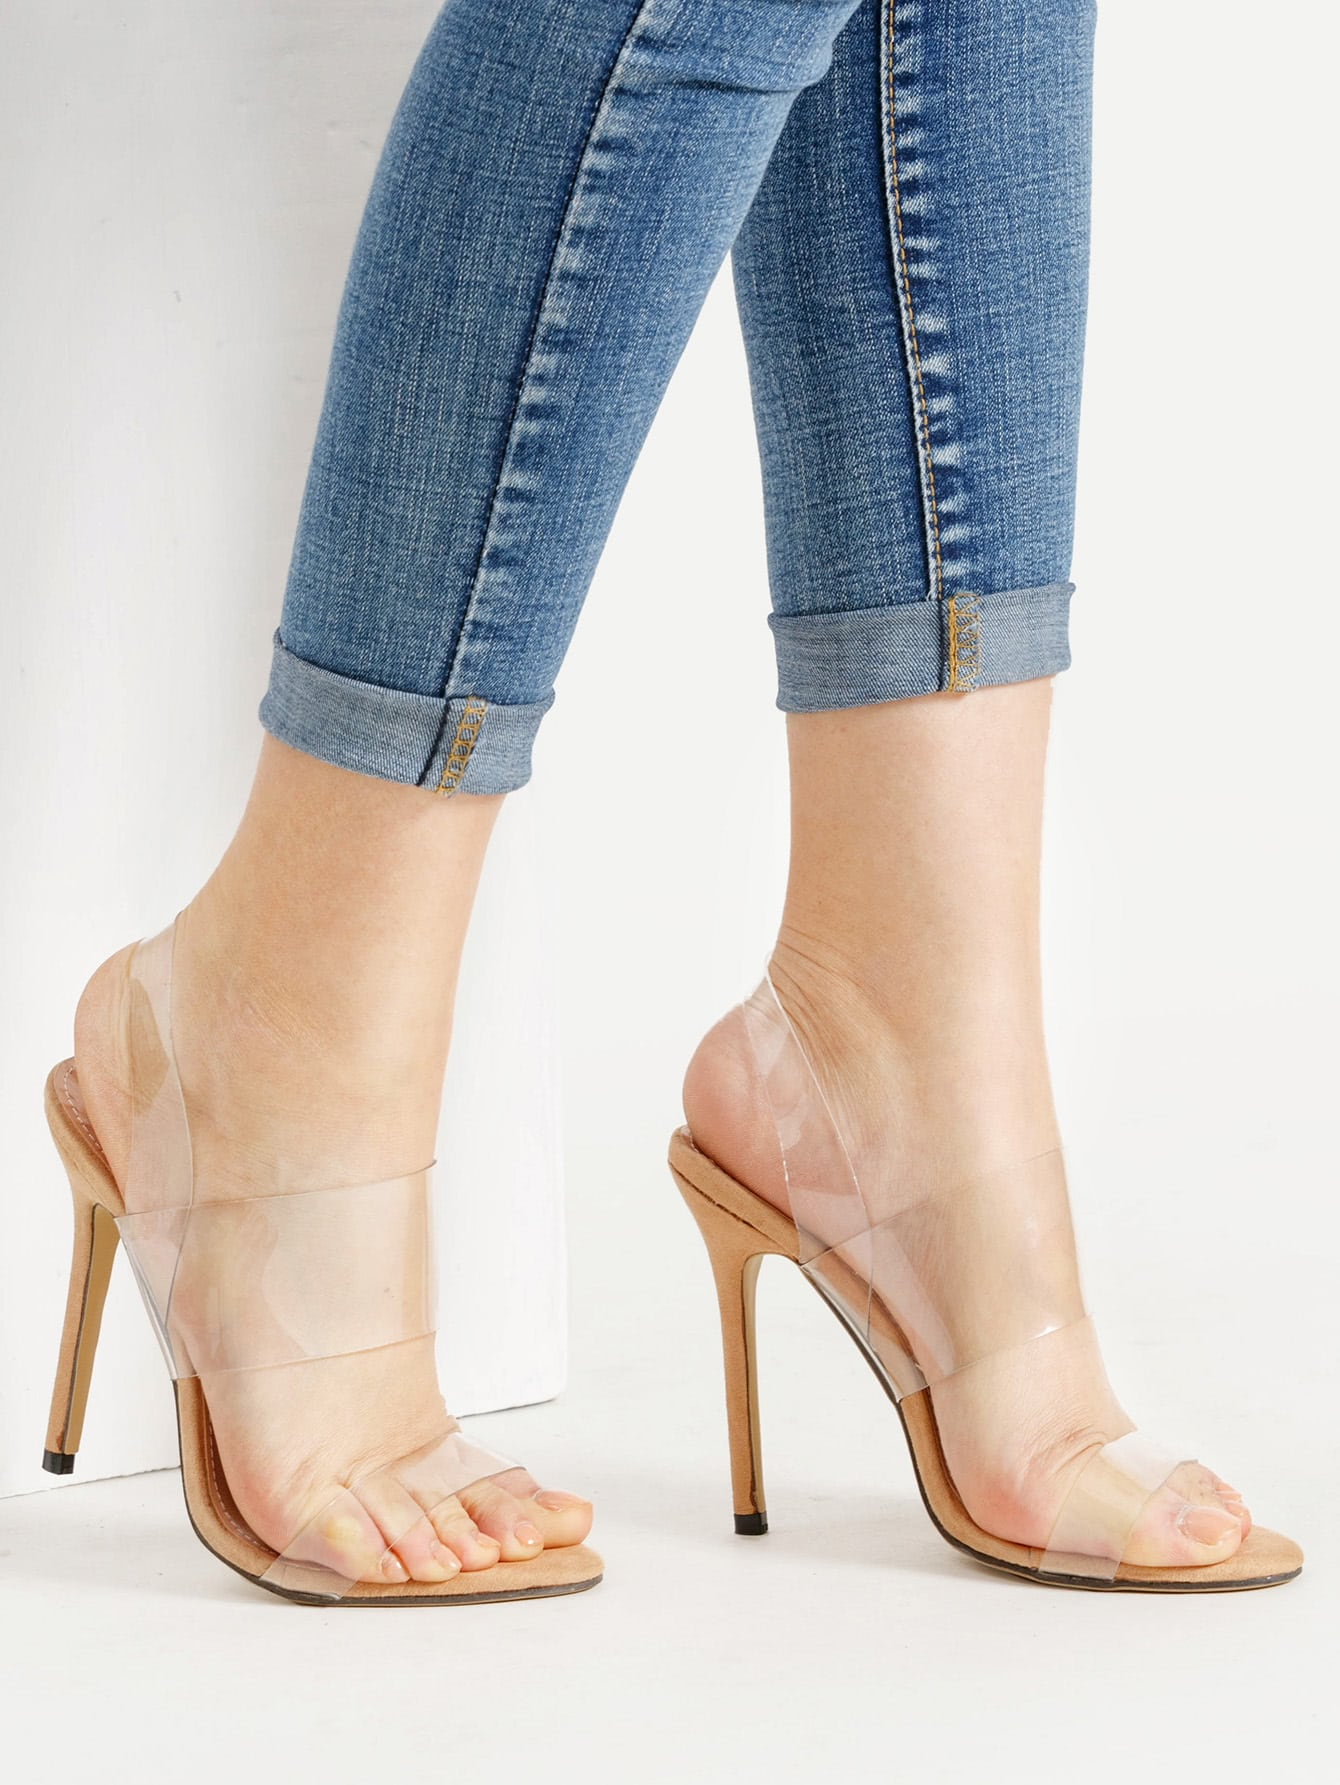 Image of Clear Strap Stiletto Sandals